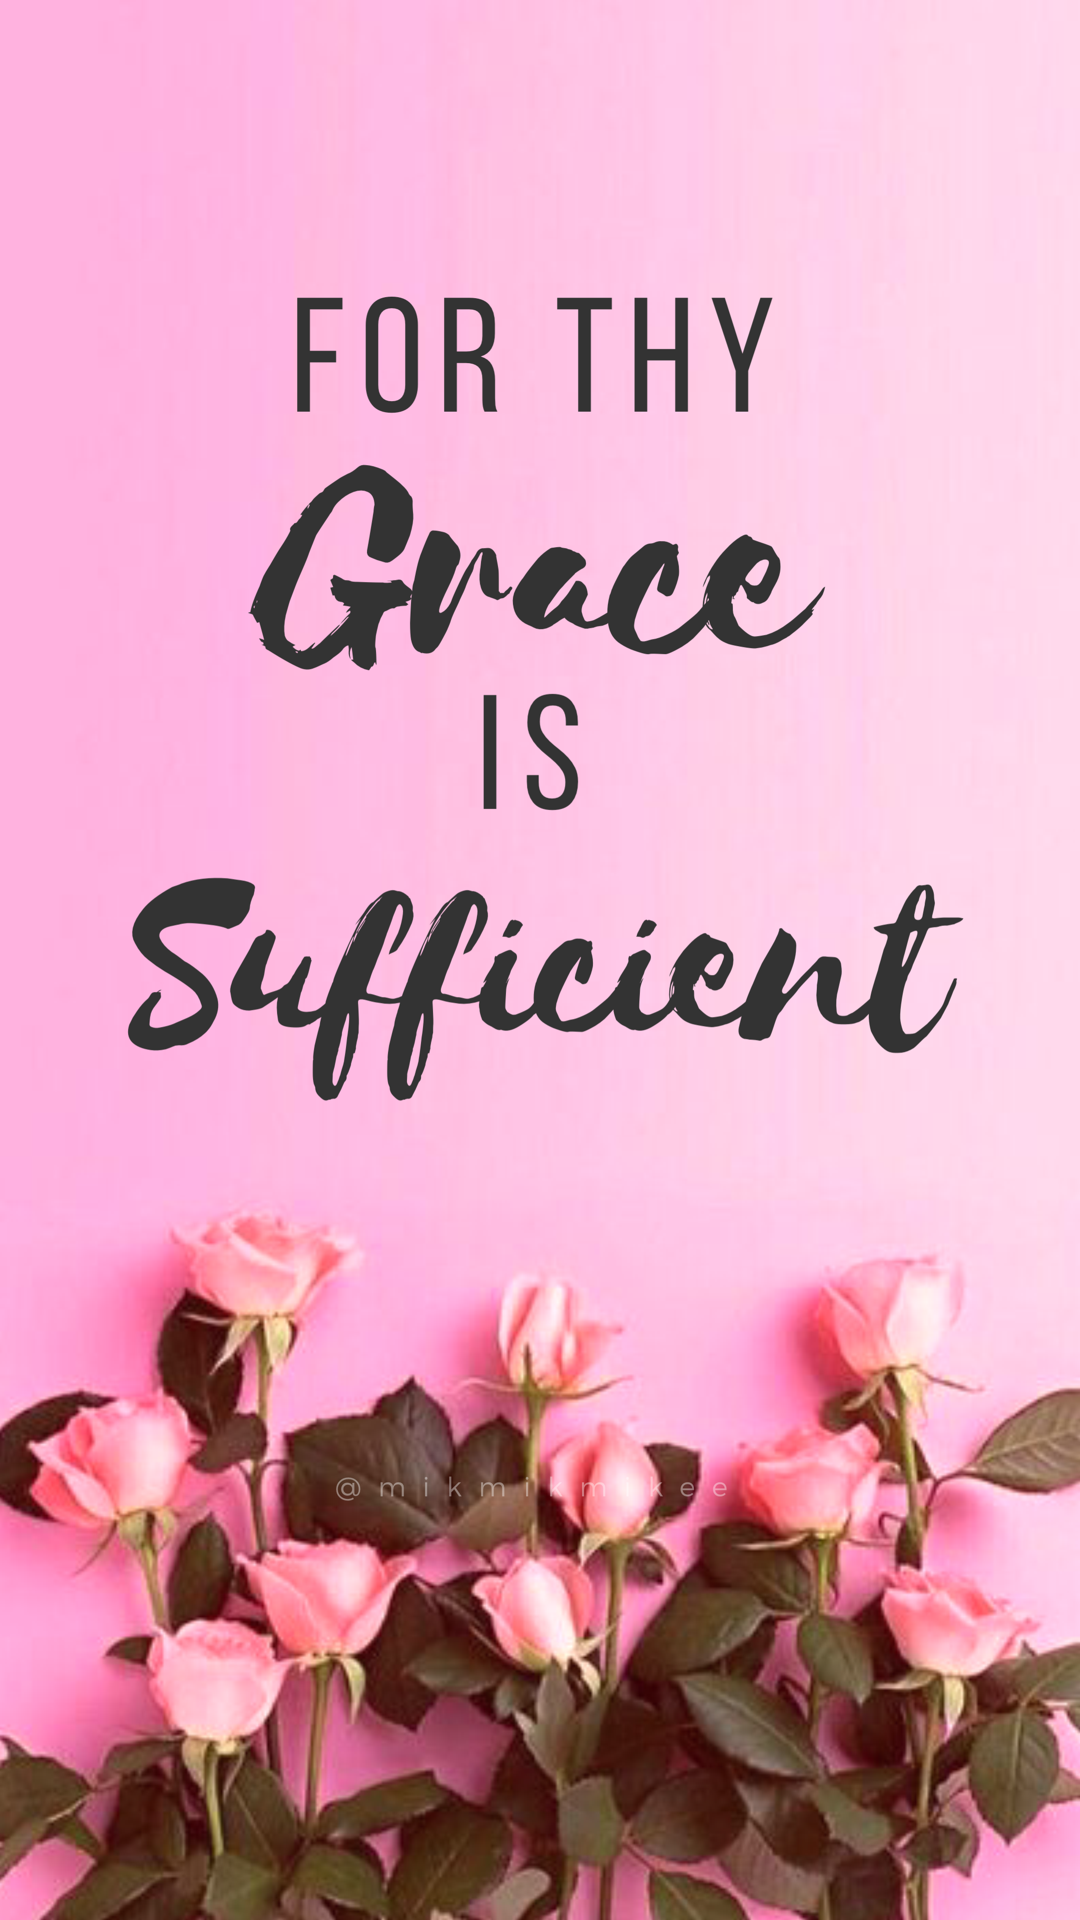 Fall Scripture Iphone Wallpaper For Thy Grace Is Sufficient Floral Pink Wallpaper Lock